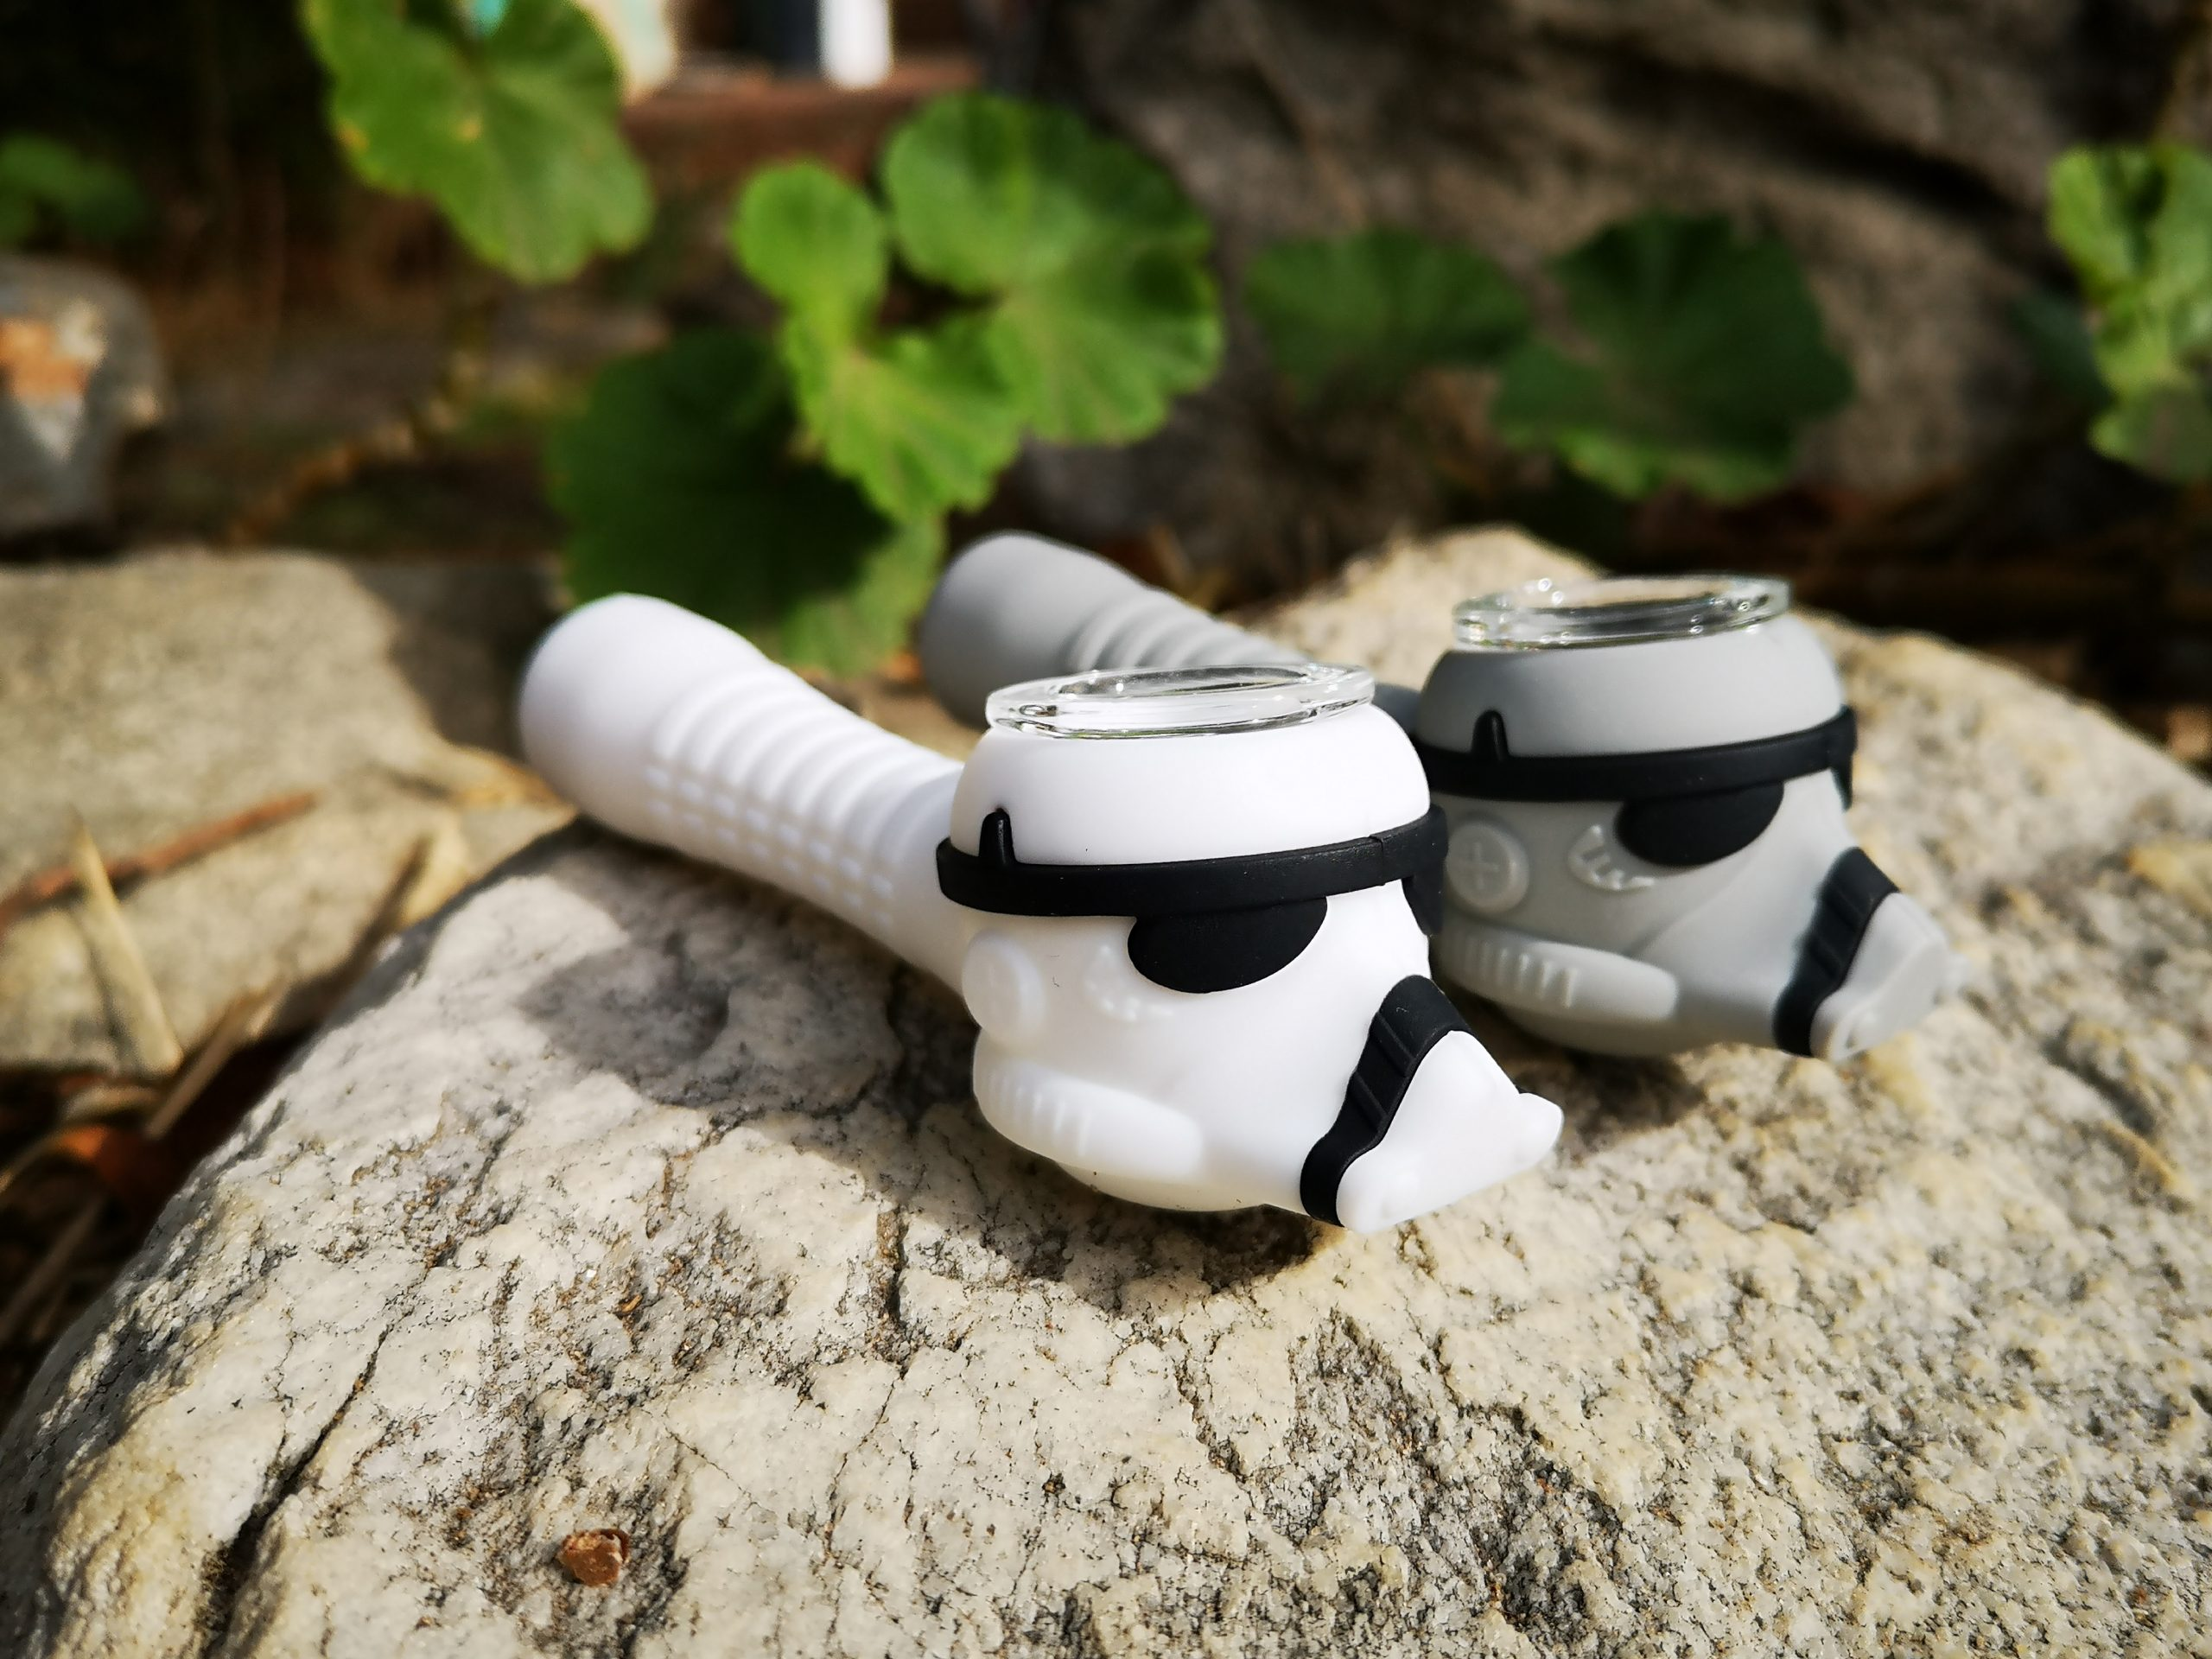 Stormtrooper Smoker - Silicone Pipe